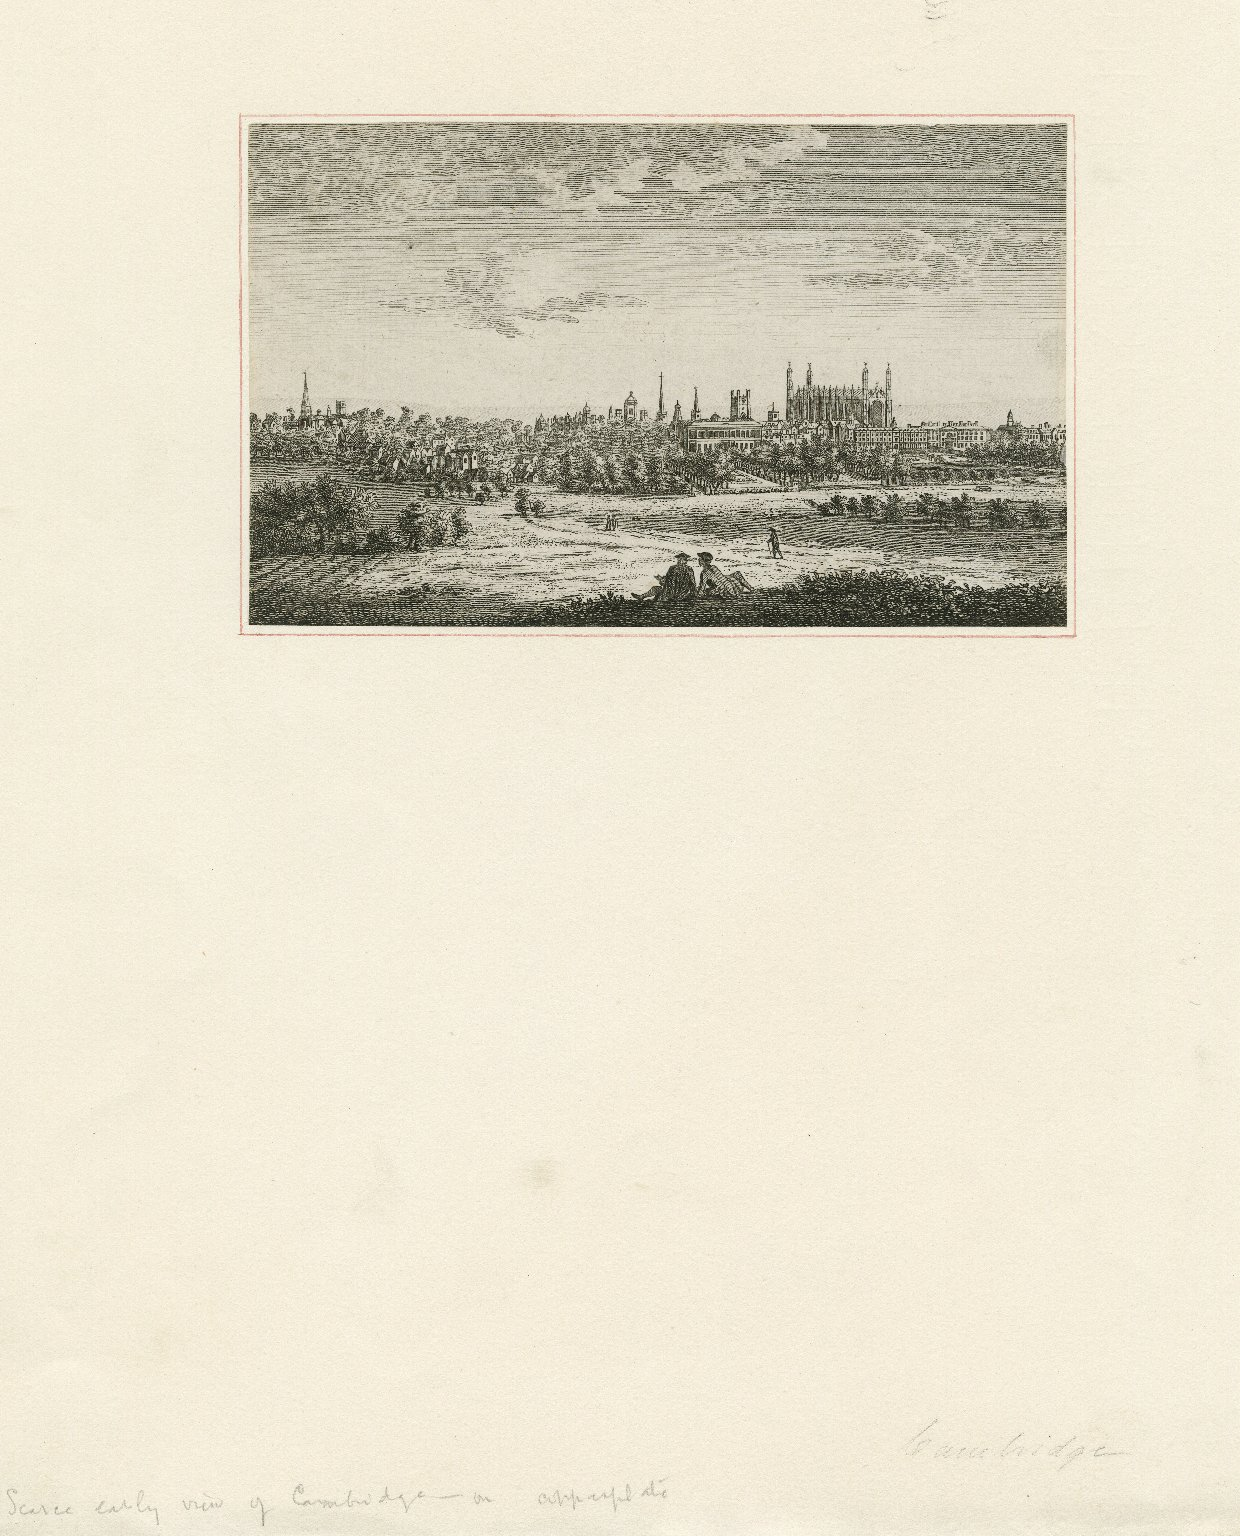 [Early view of Cambridge] [graphic].